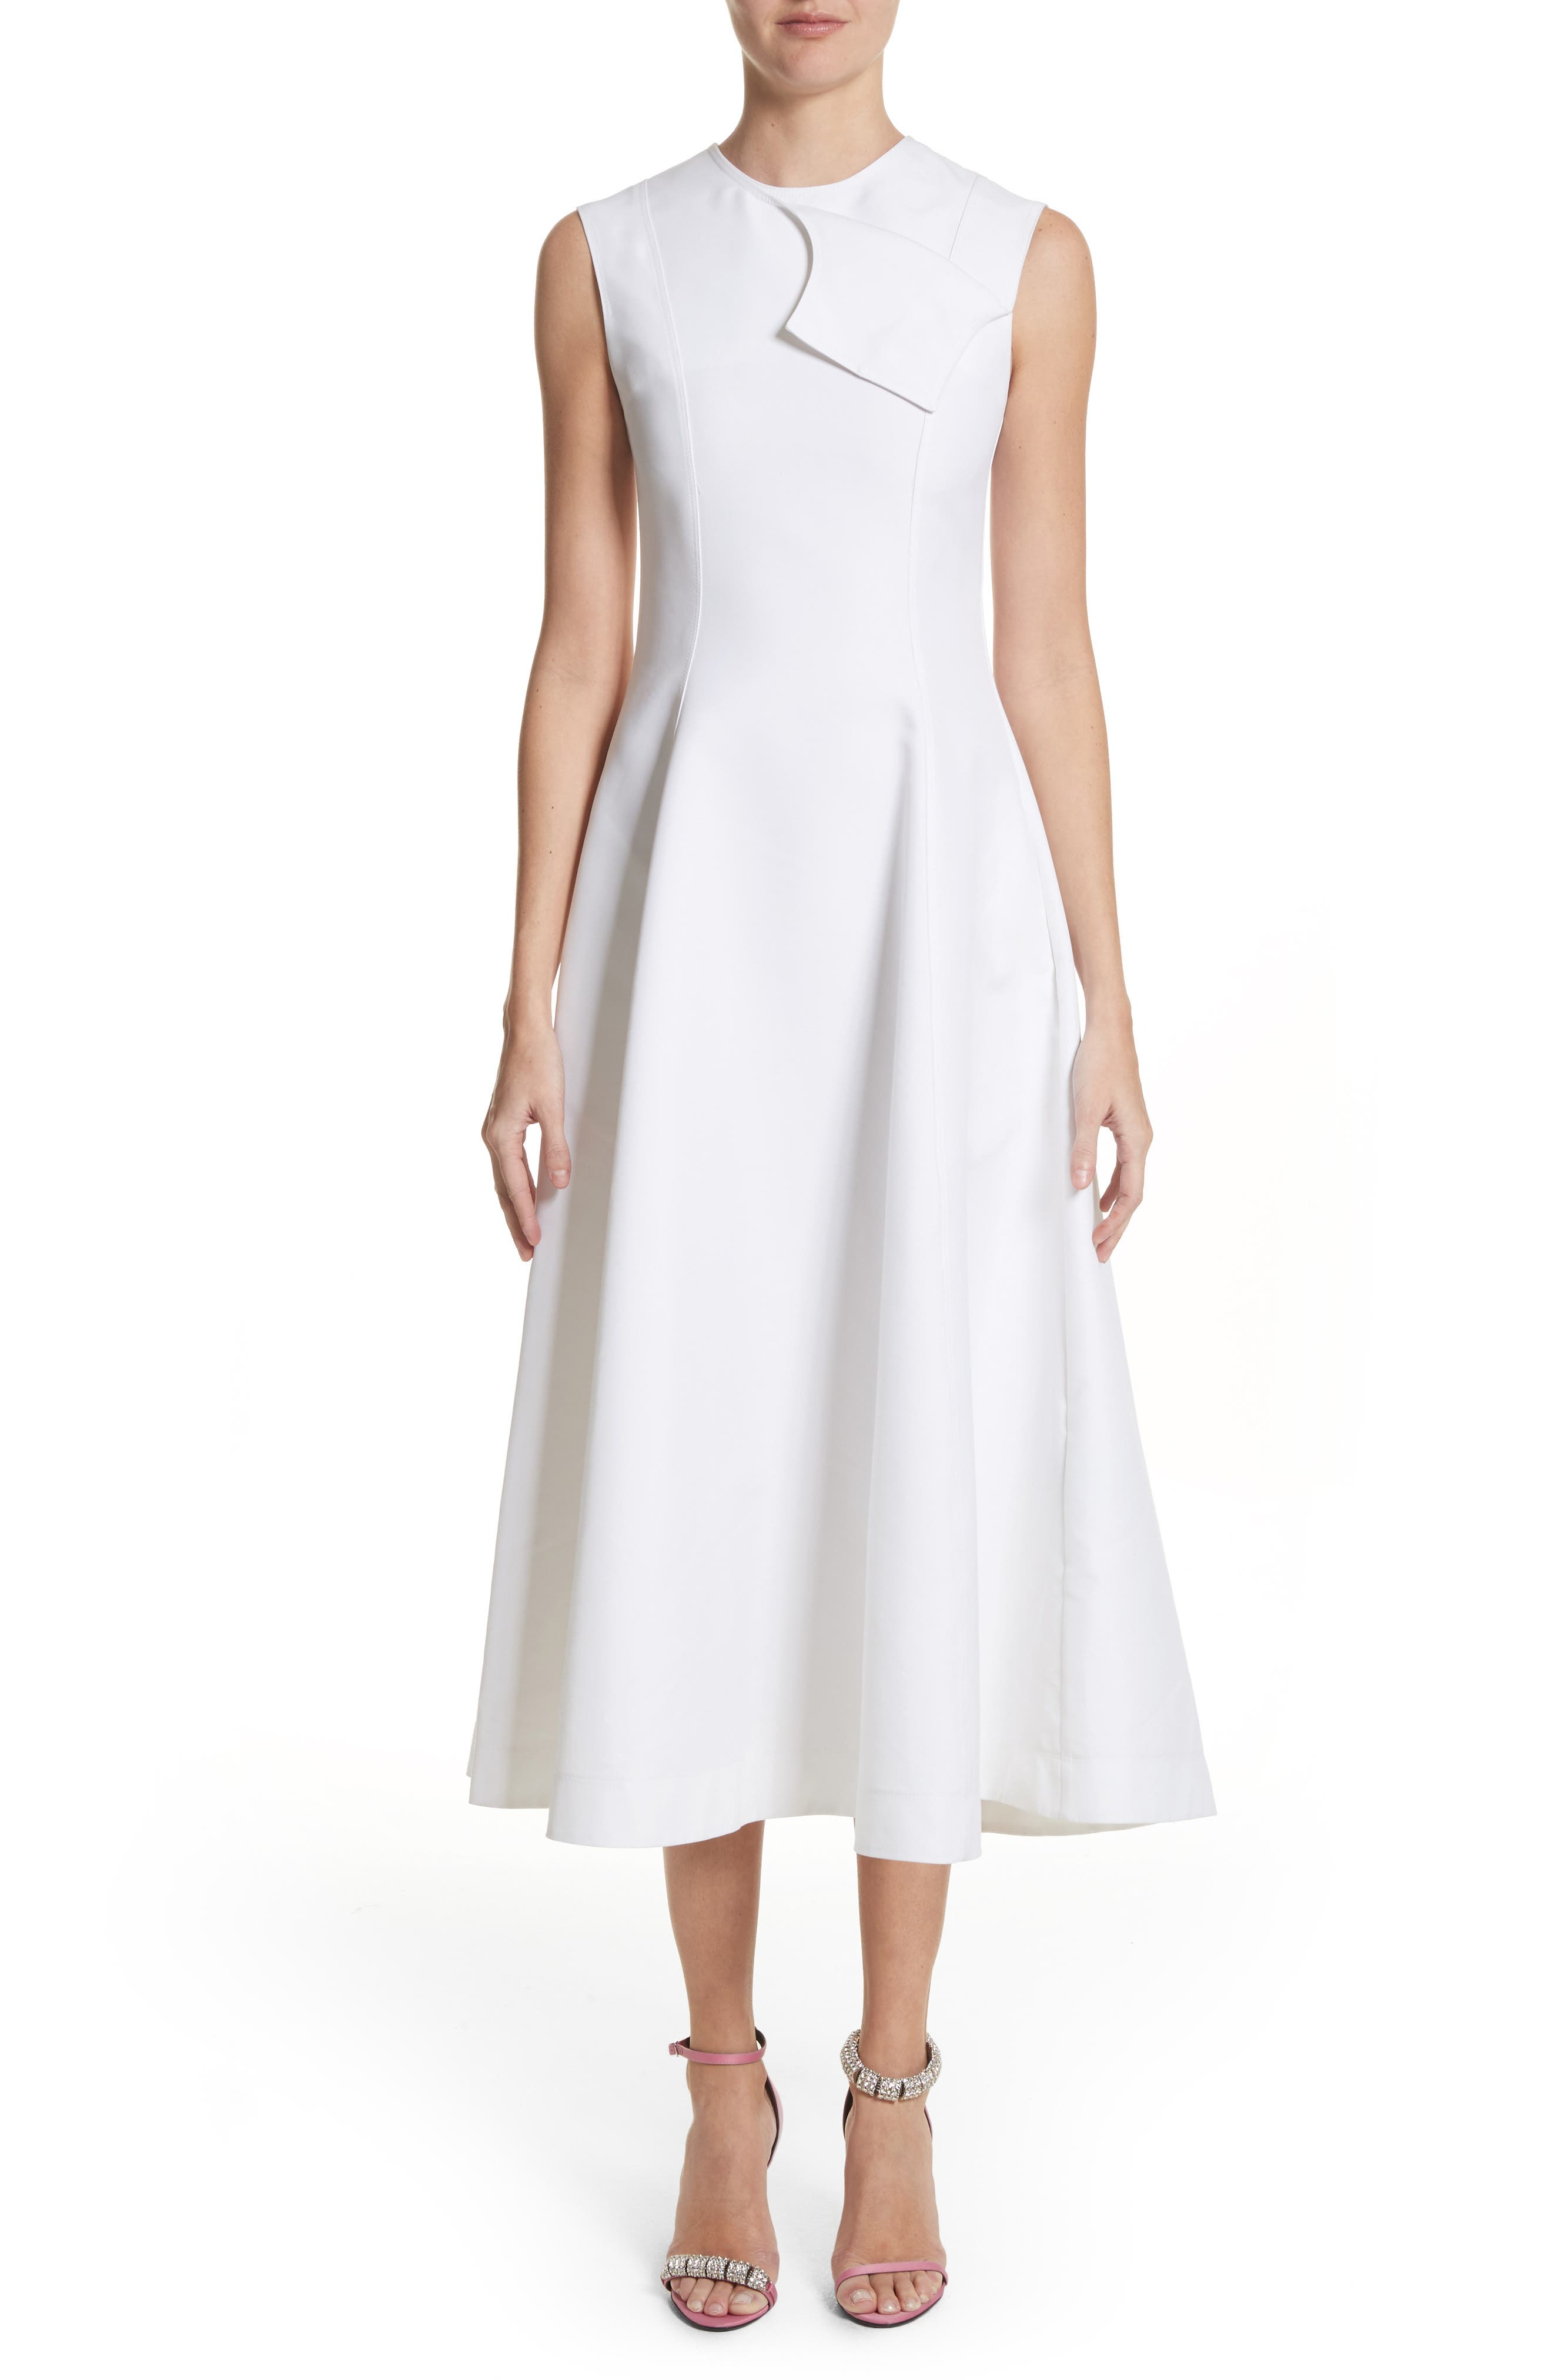 CALVIN KLEIN 205W39NYC, Flap Detail A-Line Dress, Main thumbnail 1, color, OPTIC WHITE